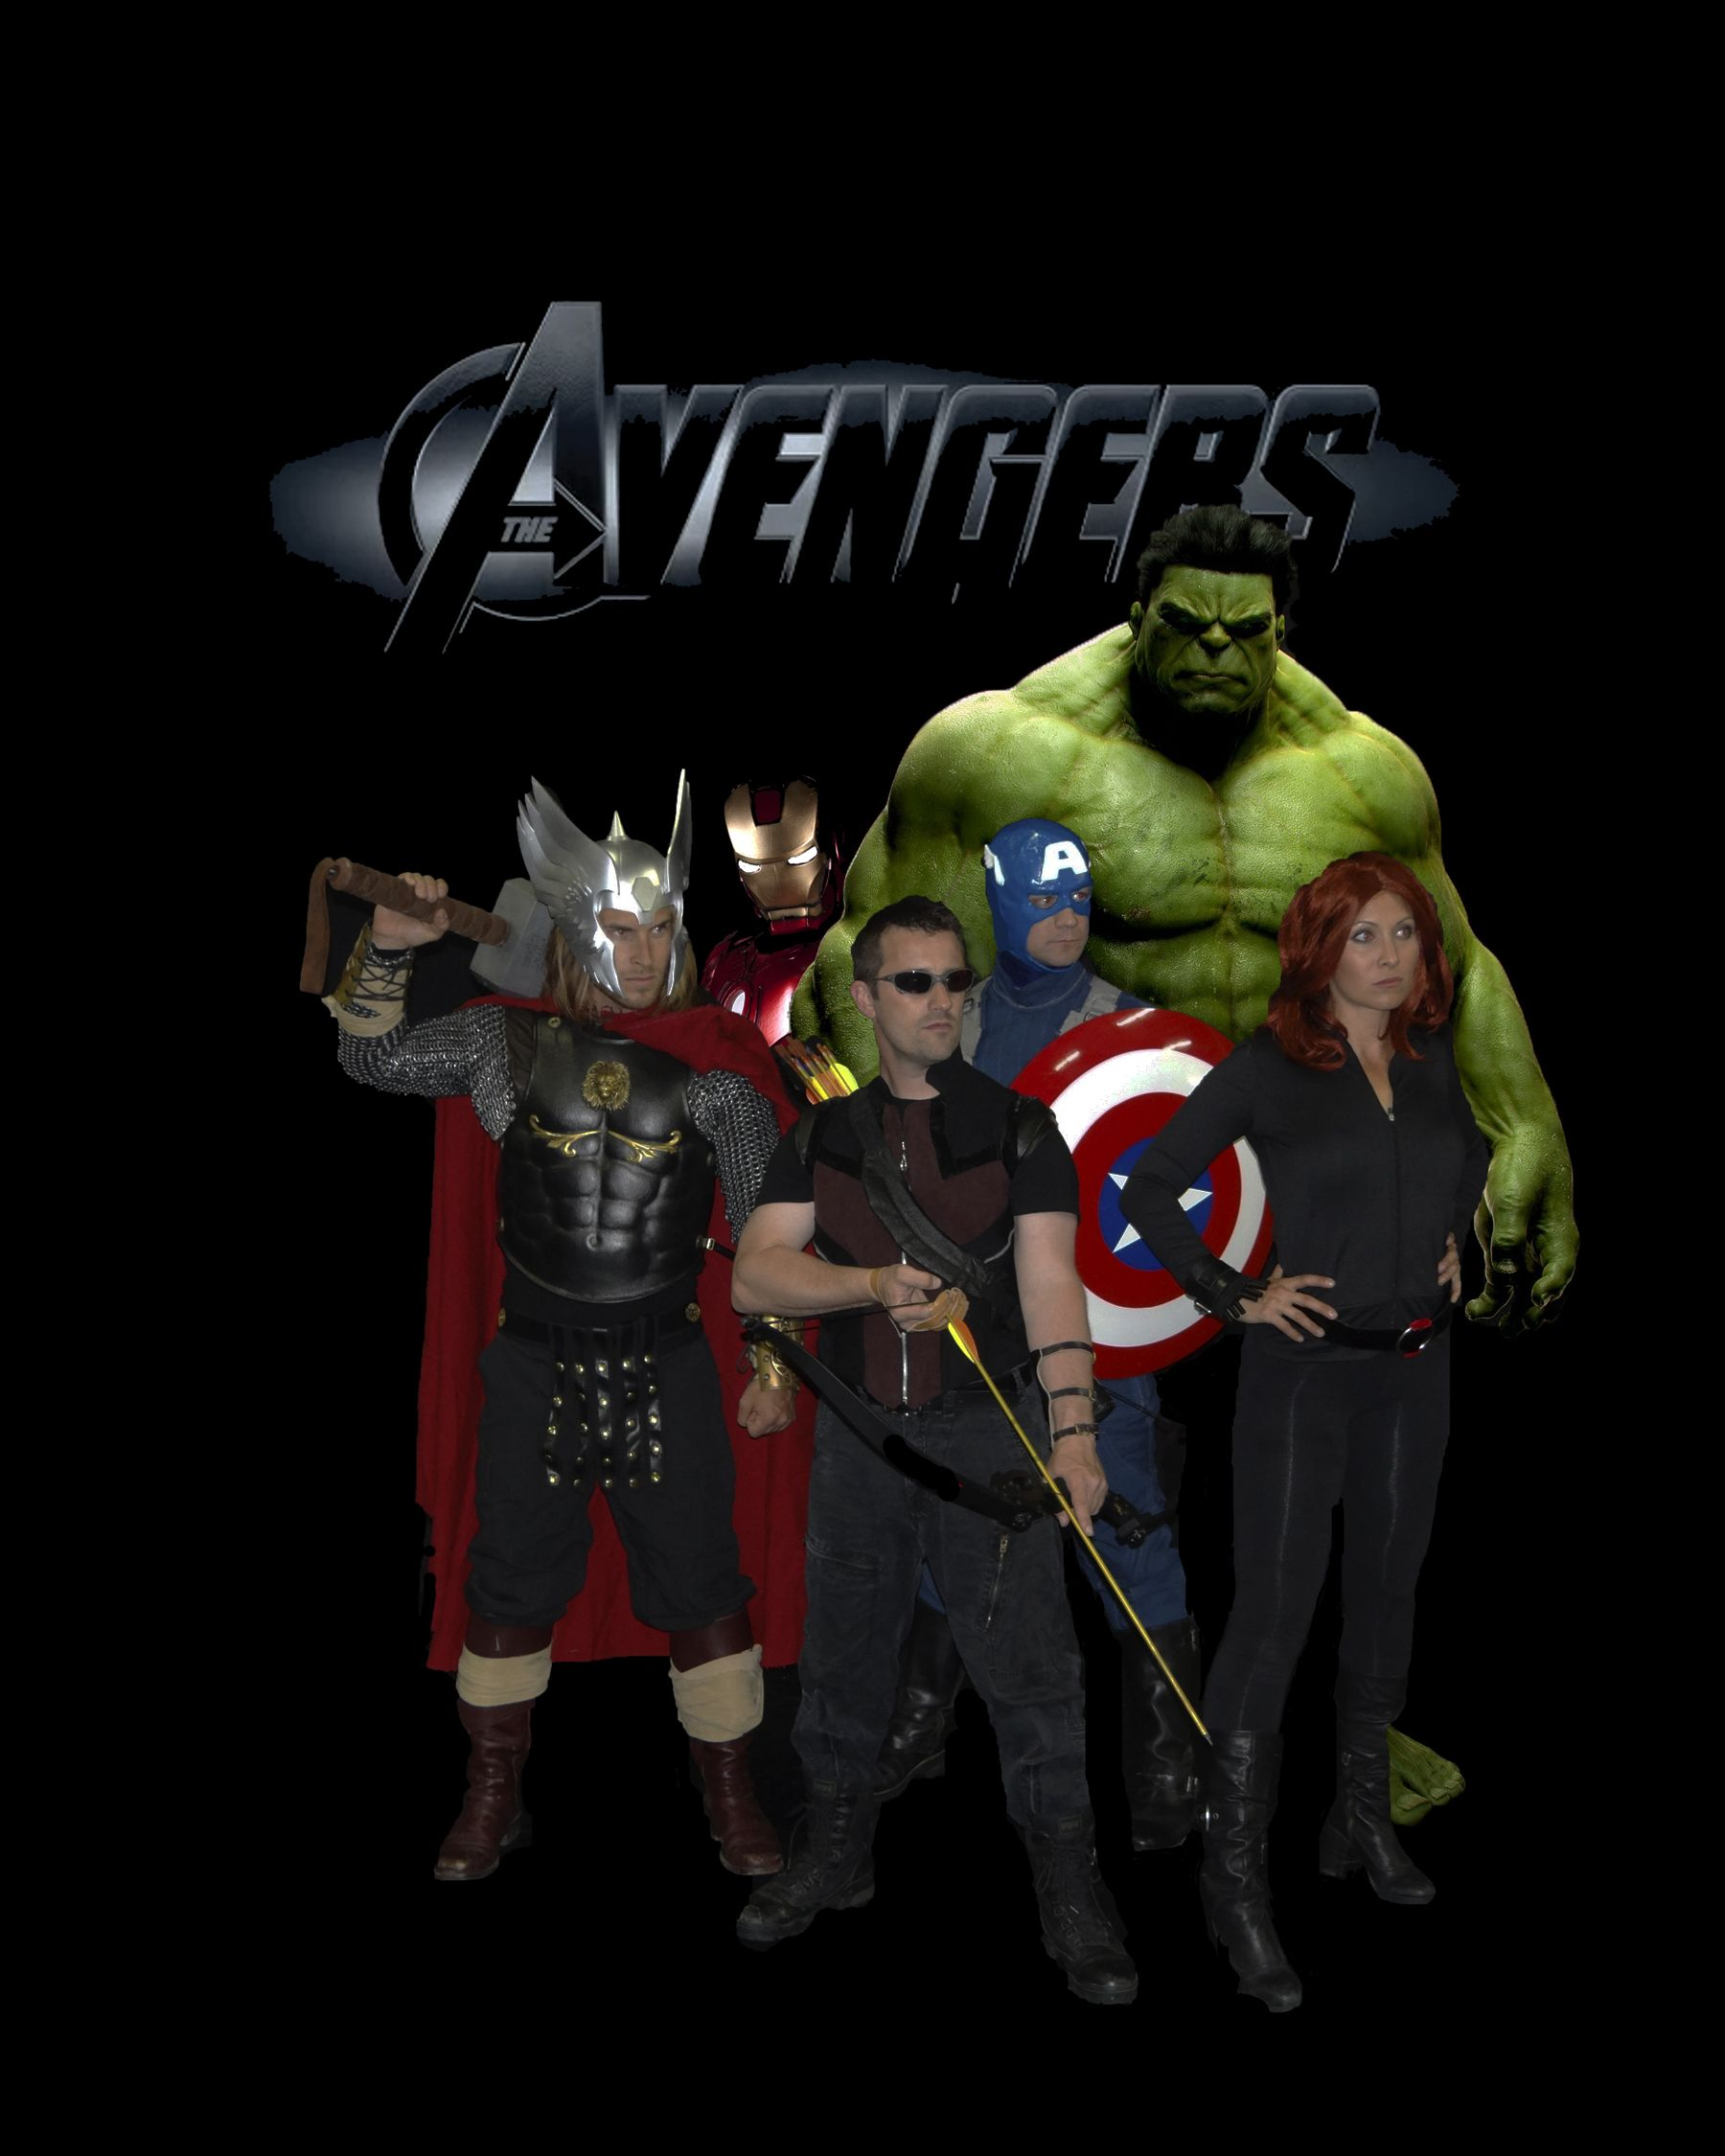 Avenger party characters